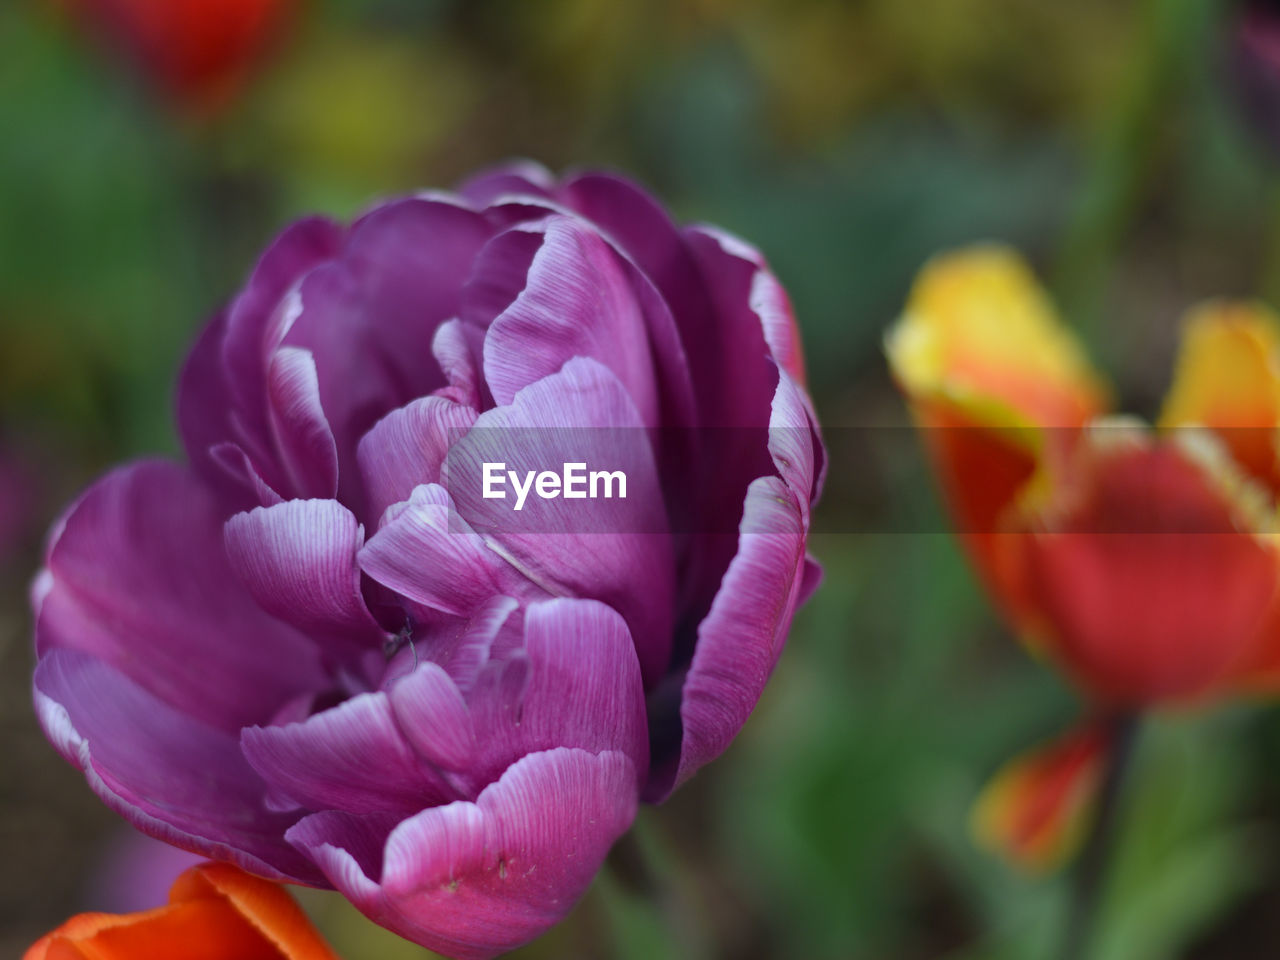 flower, petal, beauty in nature, nature, fragility, flower head, freshness, growth, plant, blooming, focus on foreground, close-up, outdoors, no people, day, tulip, pink color